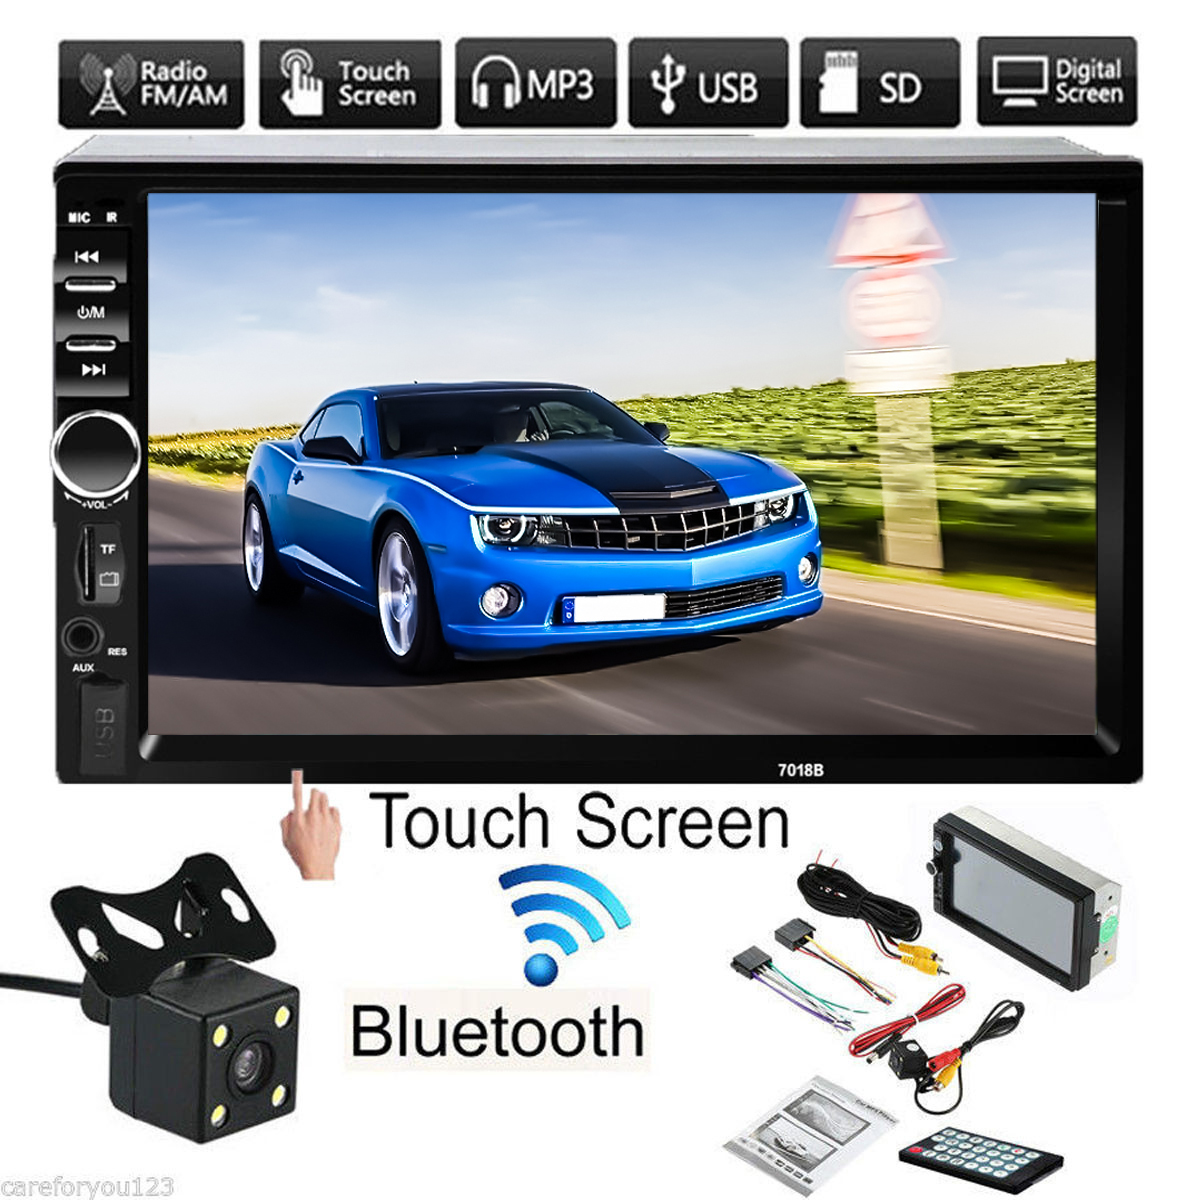 Kroak 7'' inch LCD Touch Screen Car Radio Player Bluetooth Hands Free 2Din MP5 MP3 FM AUX with Car Rear View Camera new 7 inch 2din bluetooth car radio video mp5 player auto radio fm 18 channel hd 1080p in dash remote control rear view camera